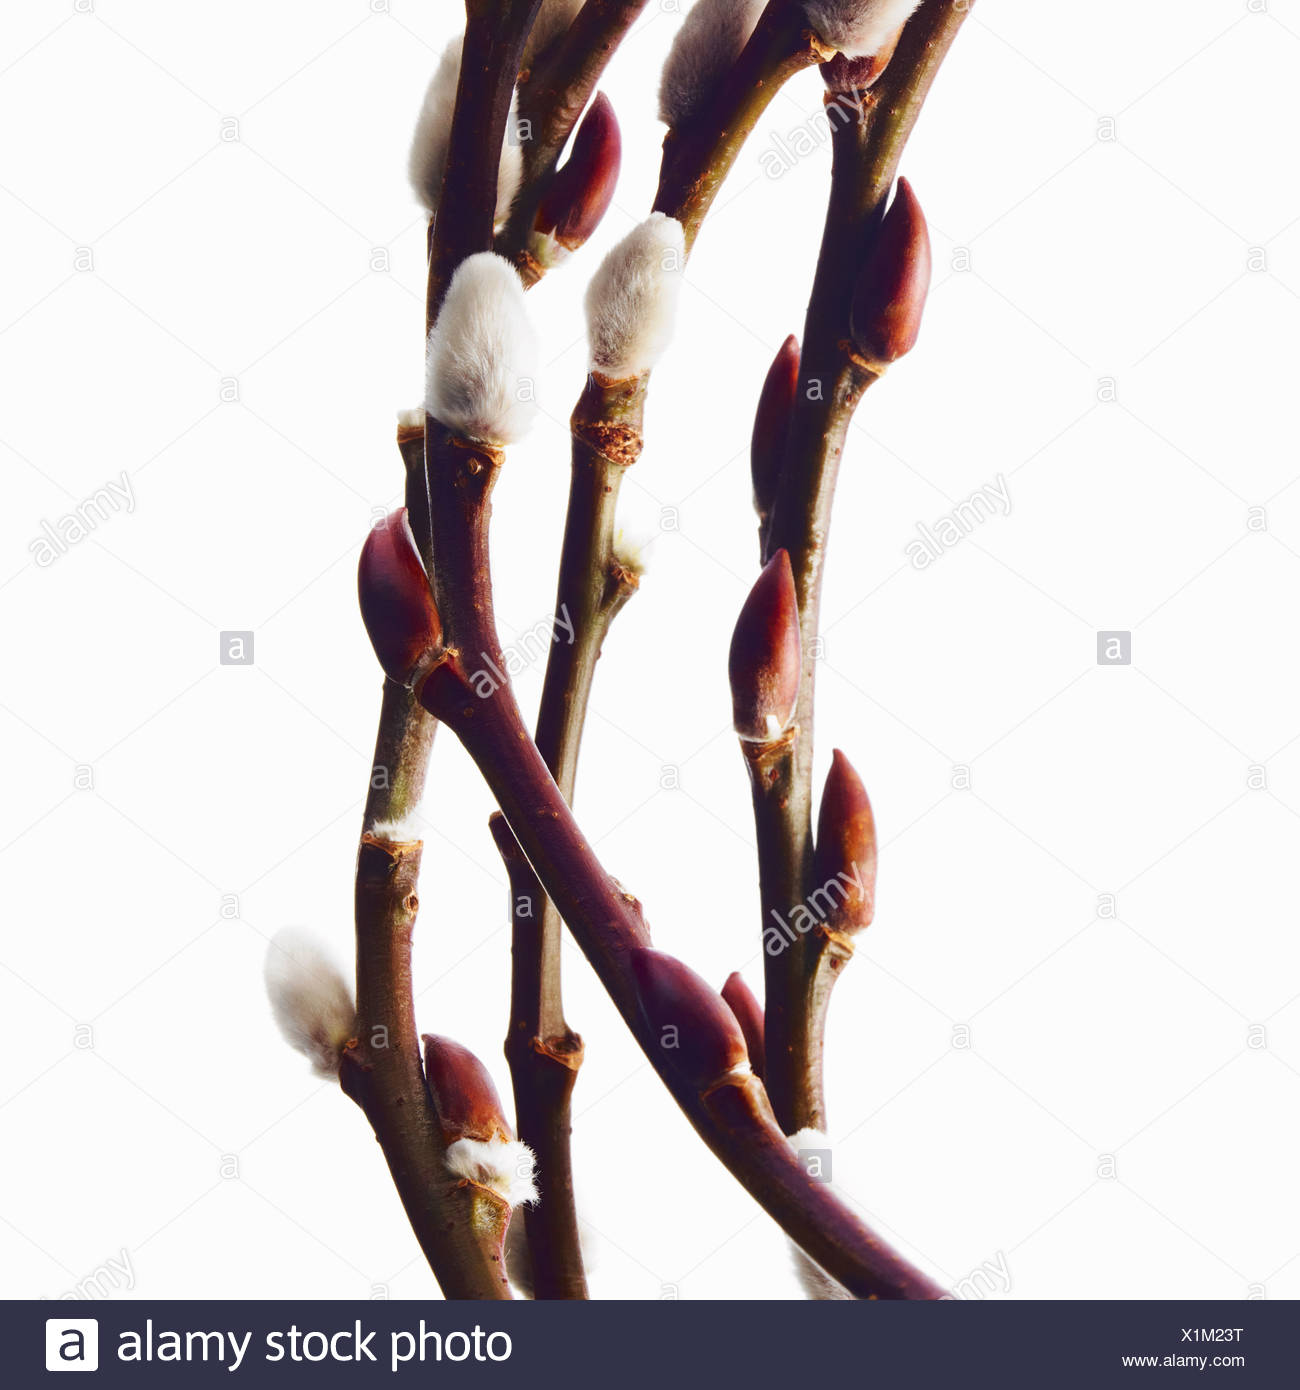 Twigs budding flowers shrubs Salix pussywillow - Stock Image